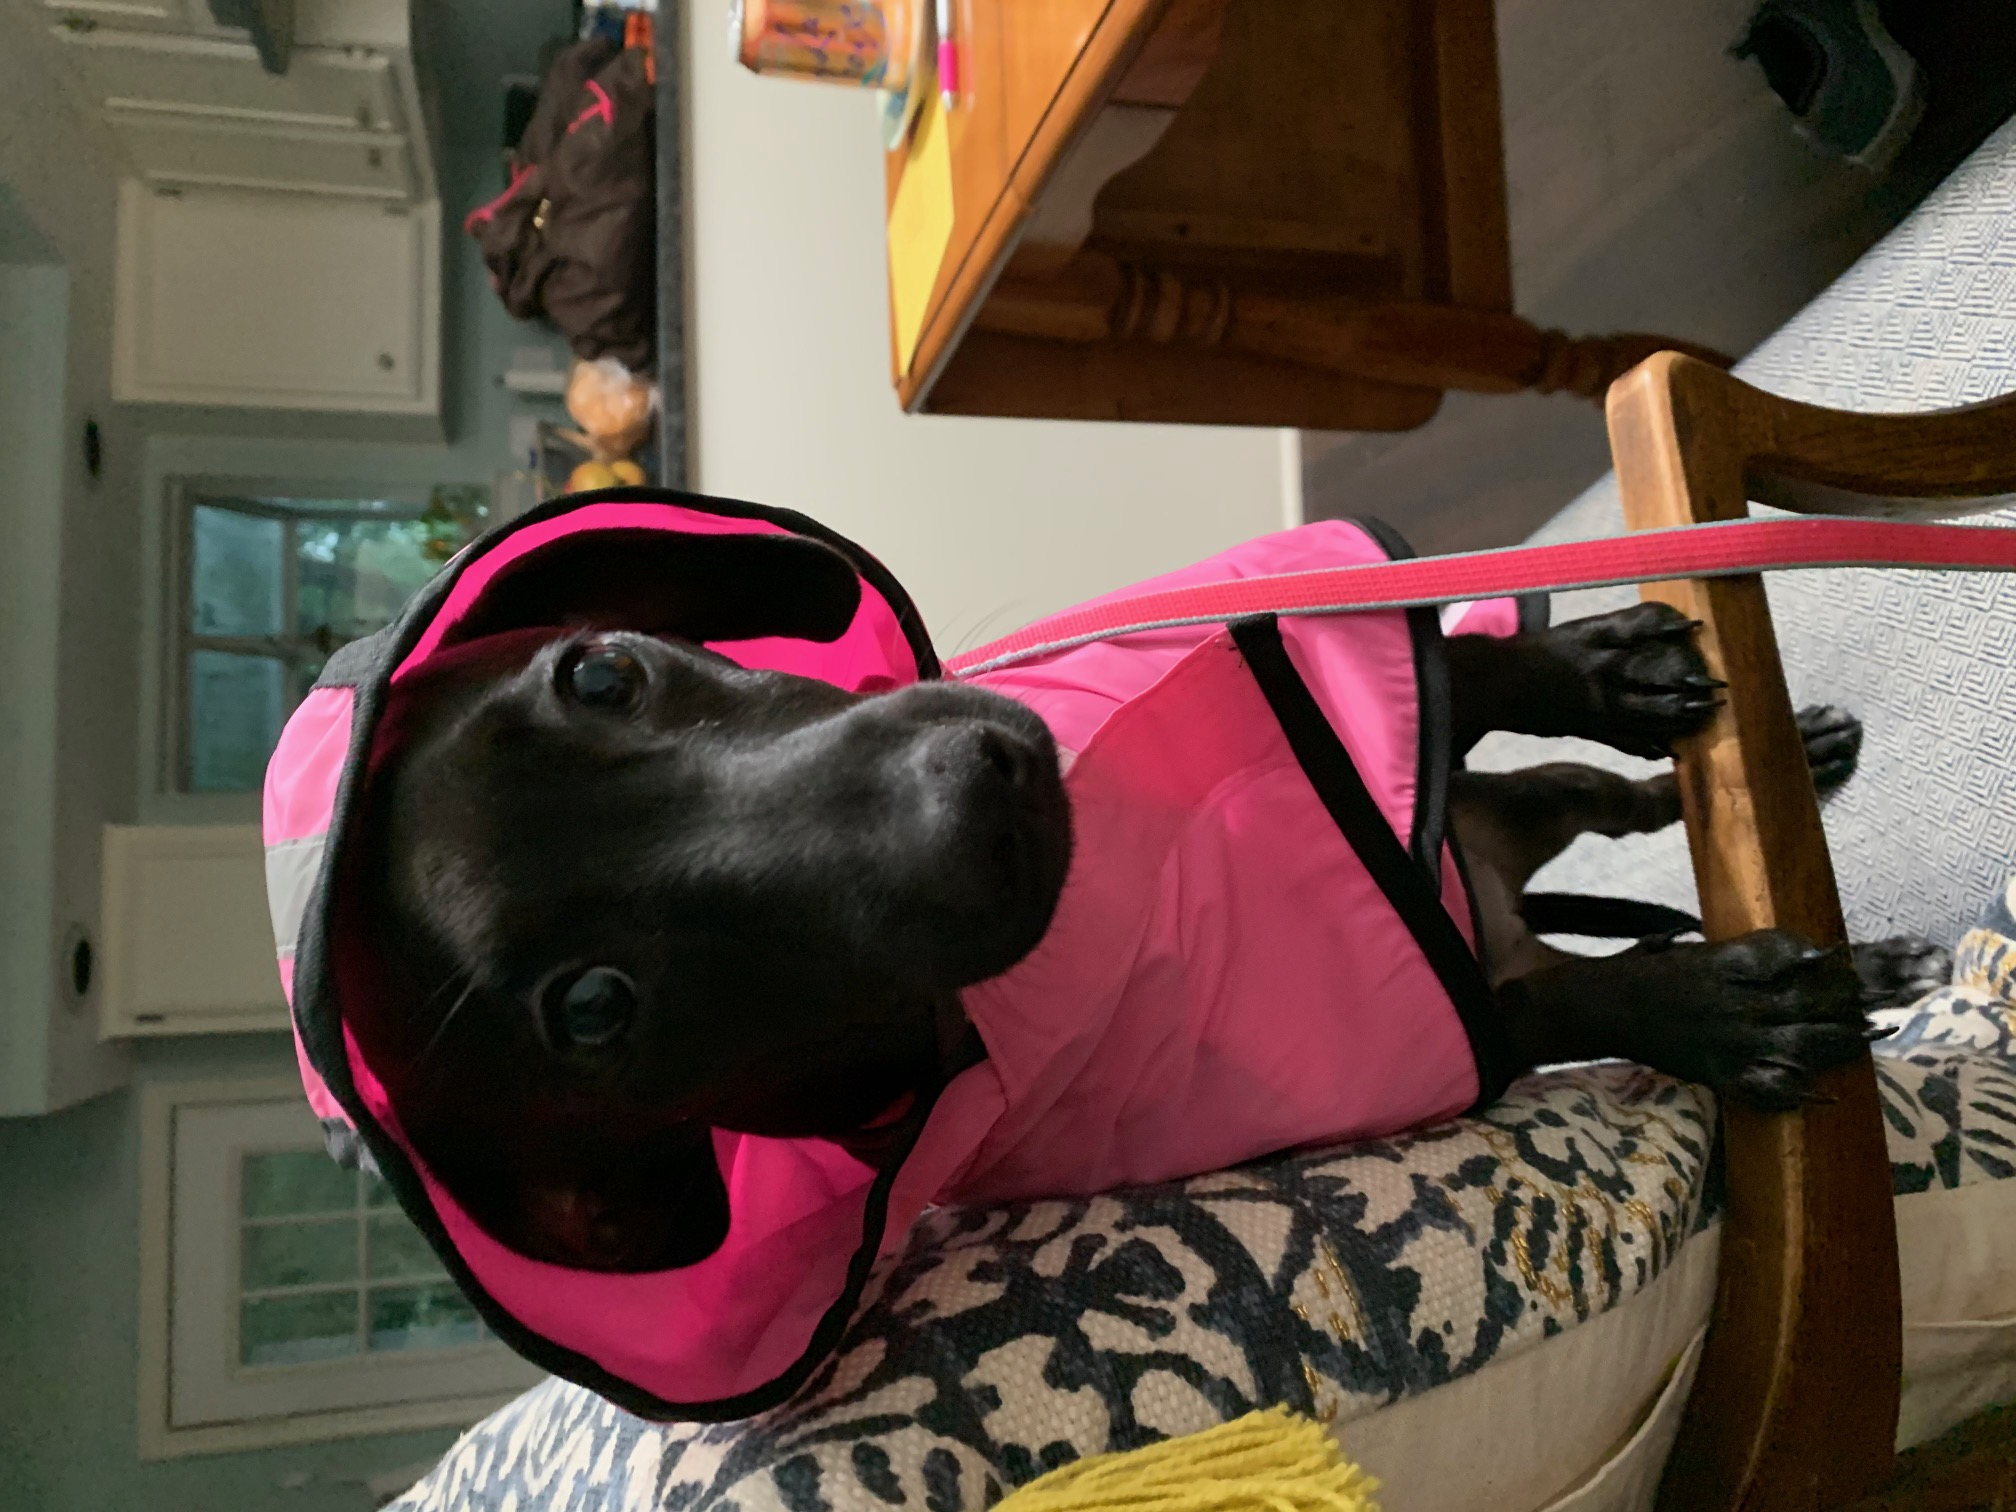 Lucy Robbins Rocking her rain jacket and chilling after a long walk